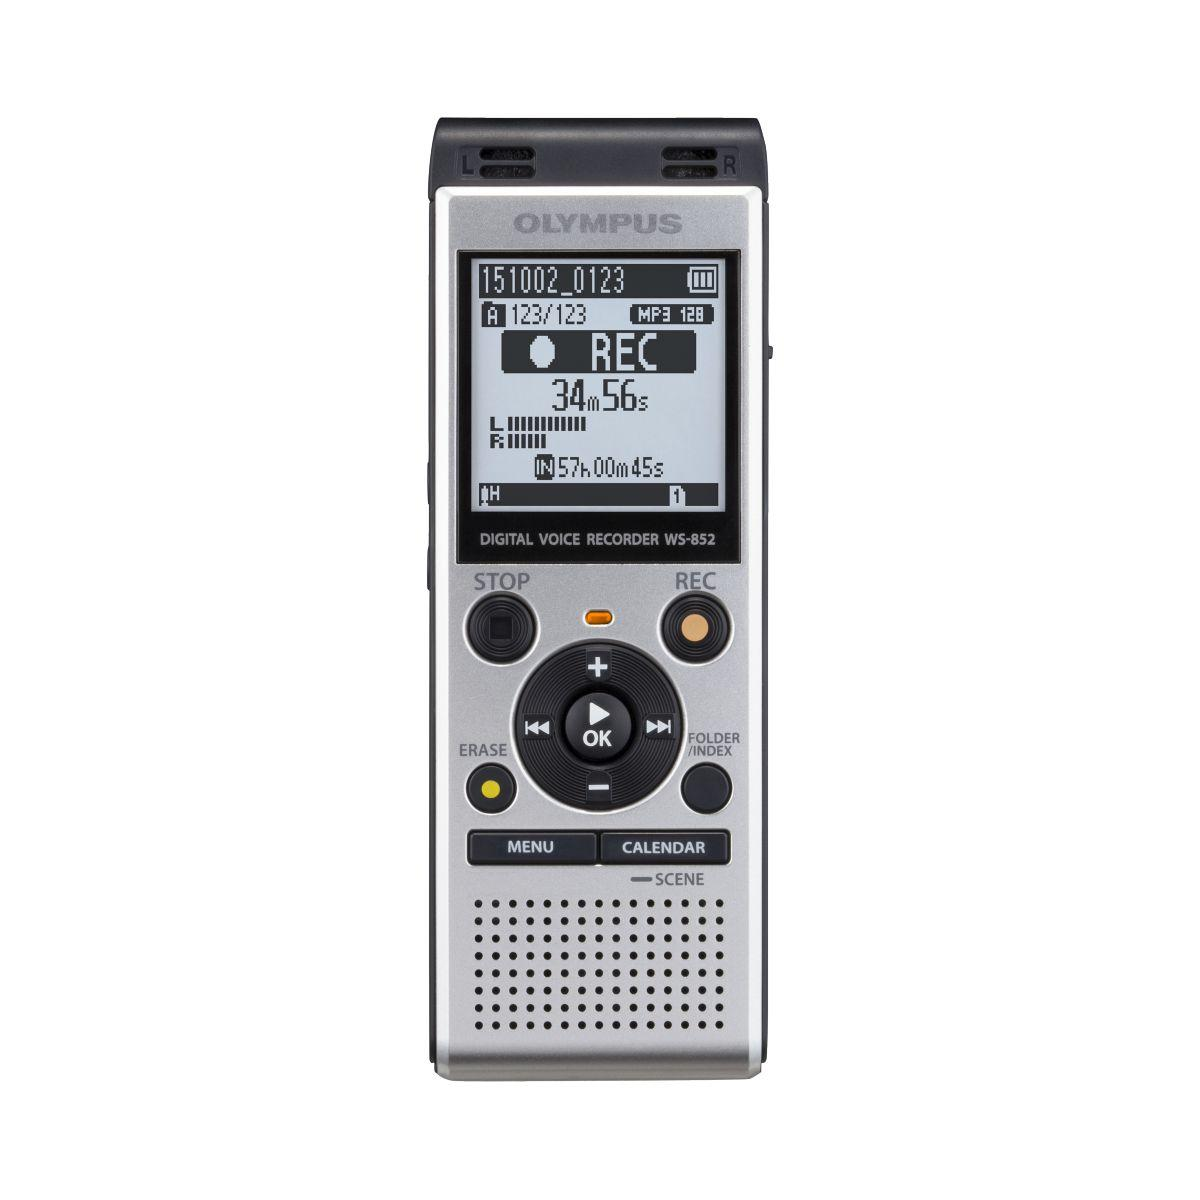 Dictaphone olympus ws-852 + microphone me-51